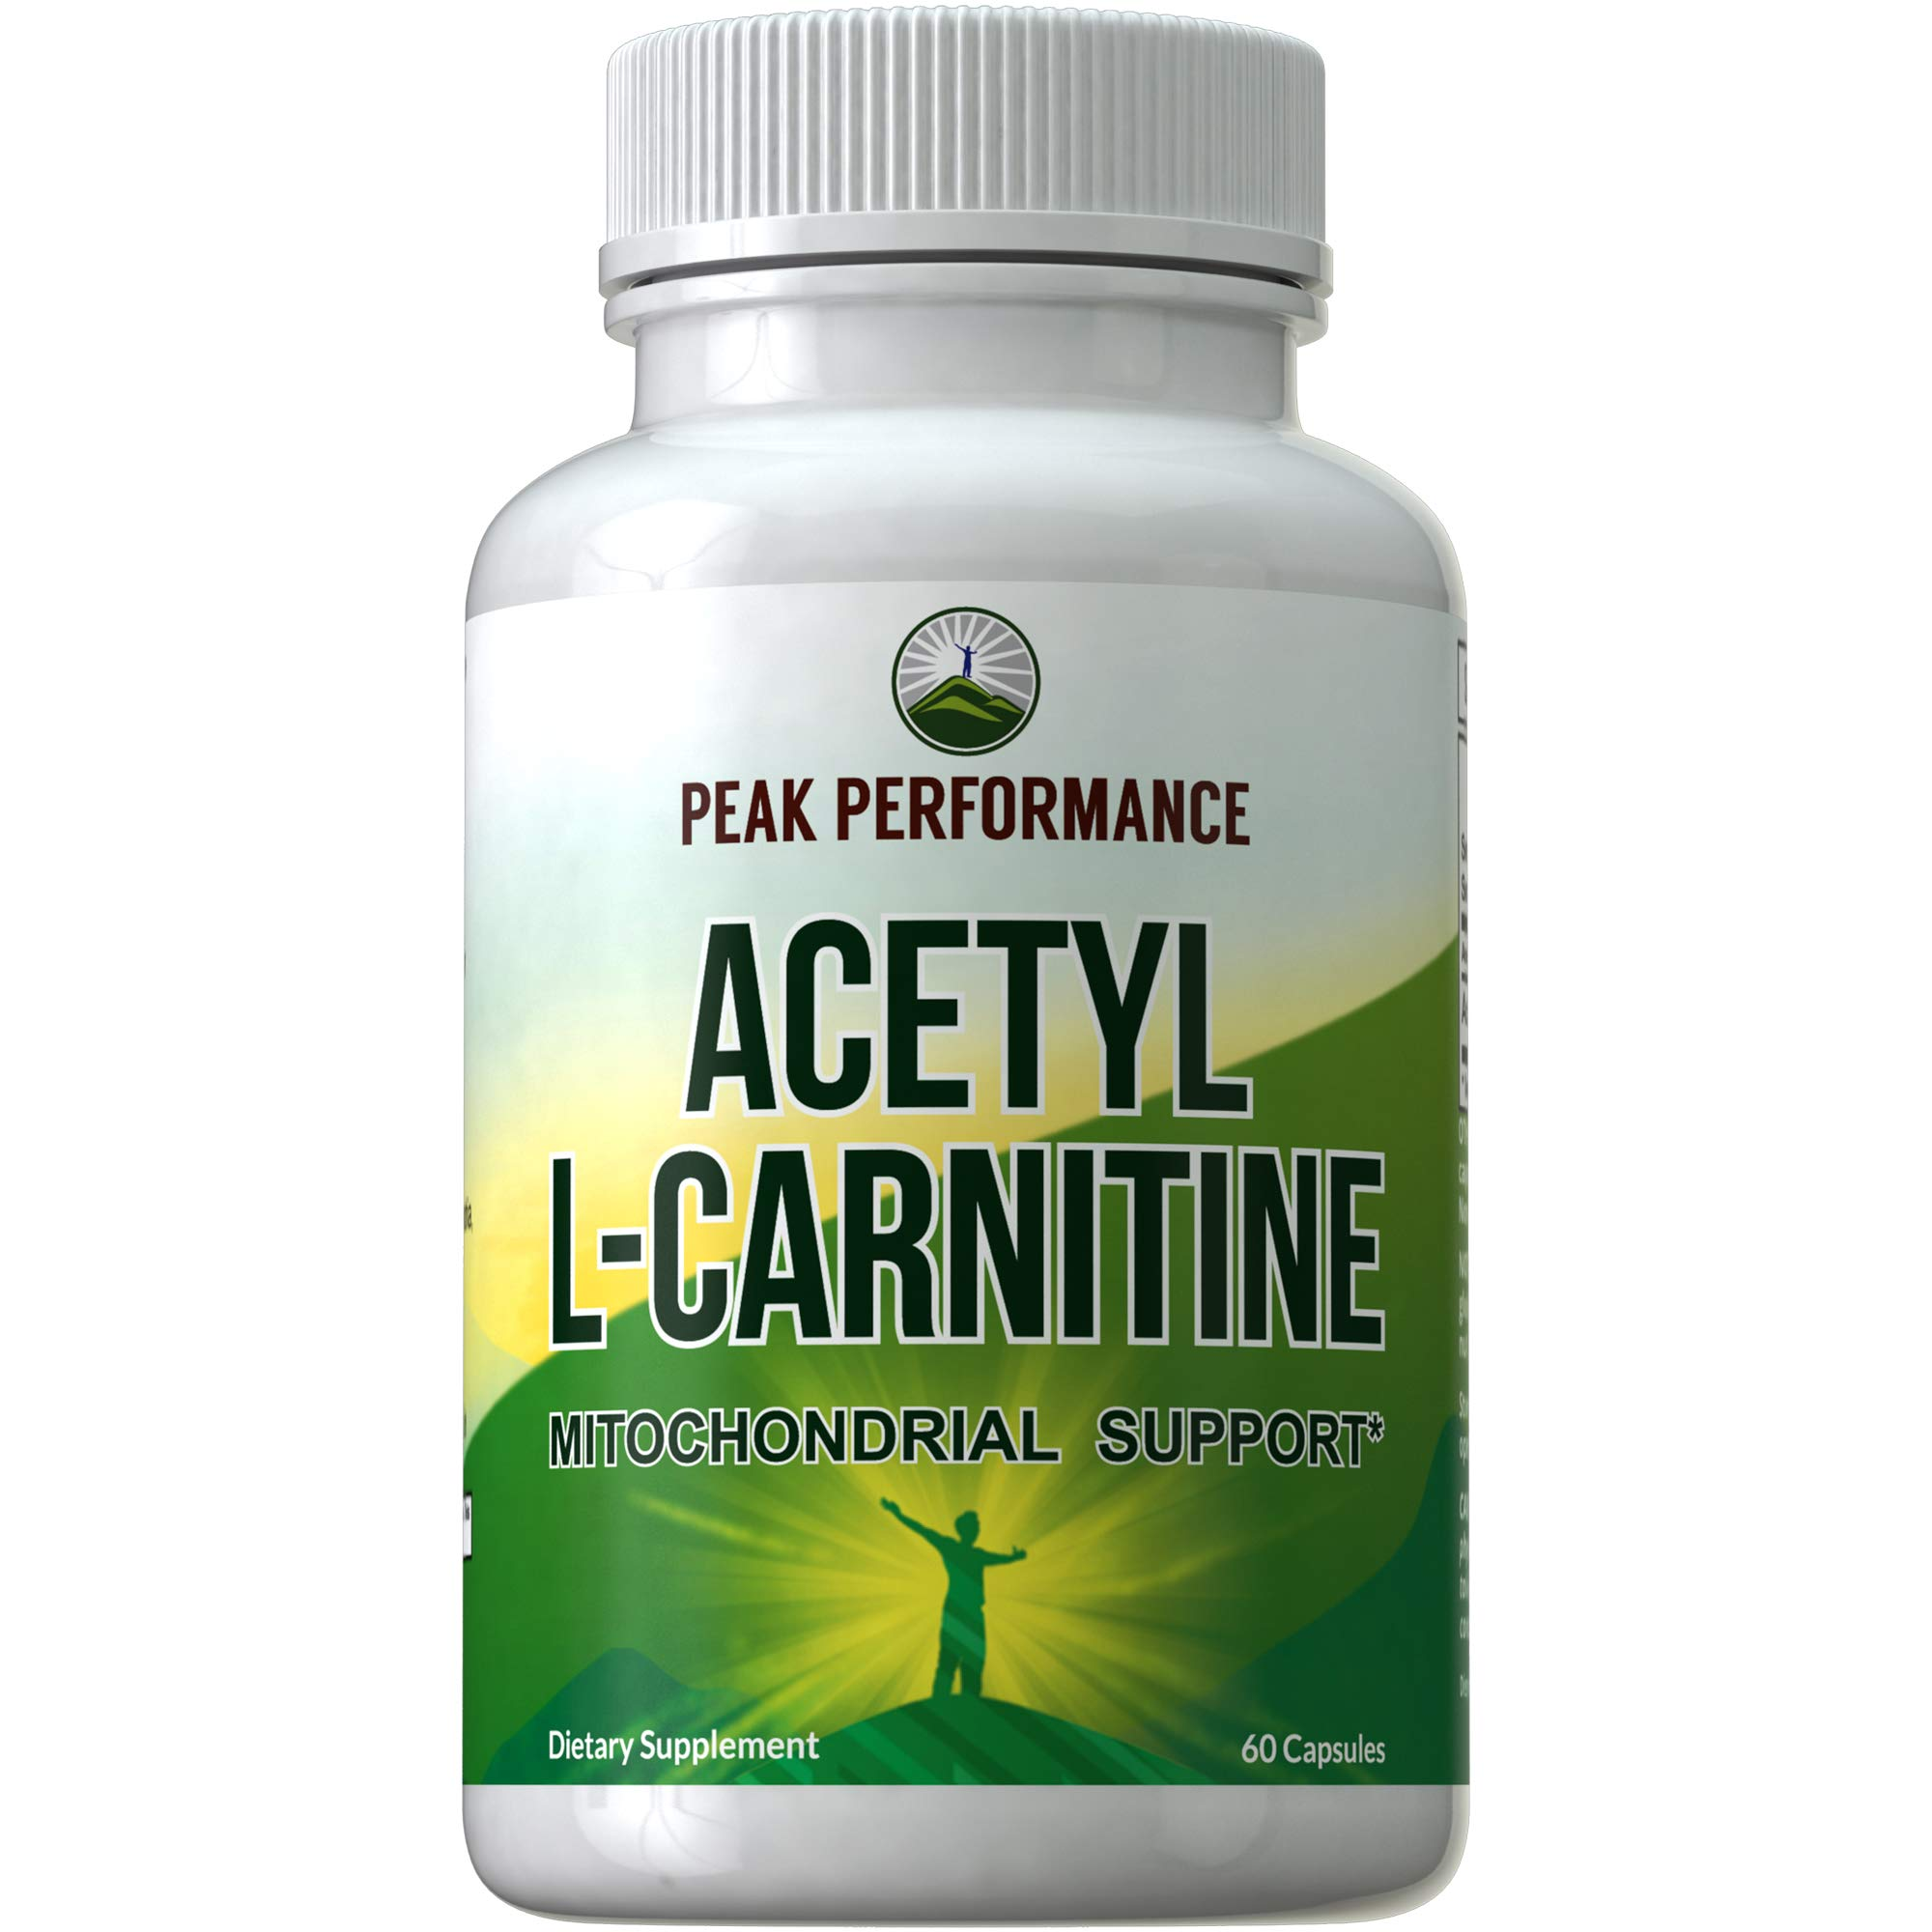 Acetyl L-Carnitine - ALCAR - Highest Quality USA Sourced L Carnitine Supplement. 1 Capsule 500mg. 2 Capsules 1000mg. Natural Amino Acids Pills Support Mitochondria and Brain Health. for Men and Women